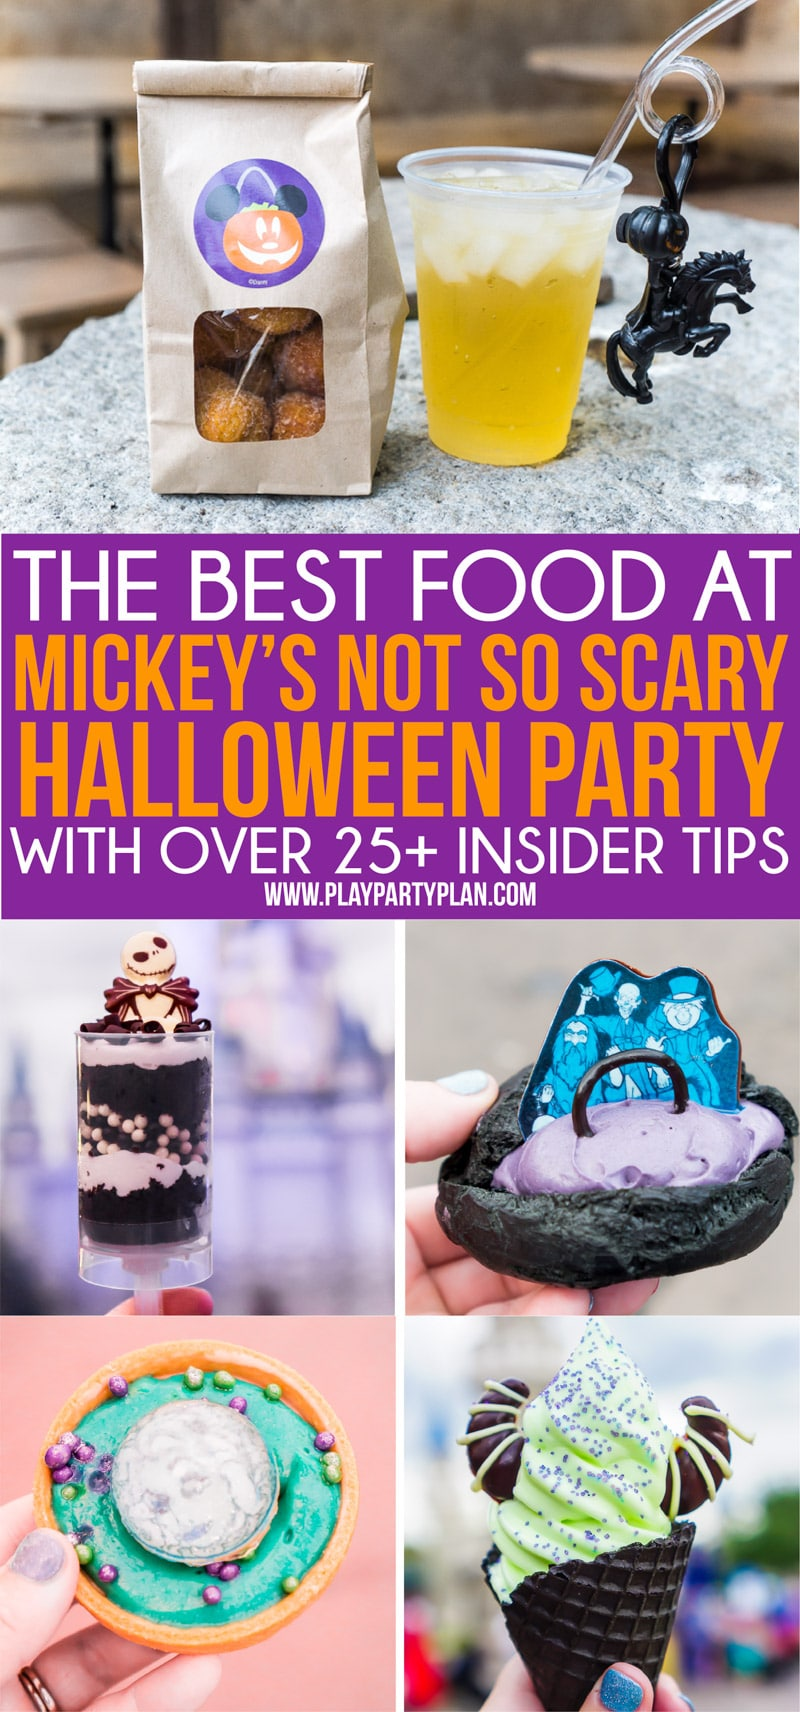 Insider tips and tricks for going to Mickey's Not So Scary Halloween Party at Disney World! Food to eat, costume ideas, schedules, and more!